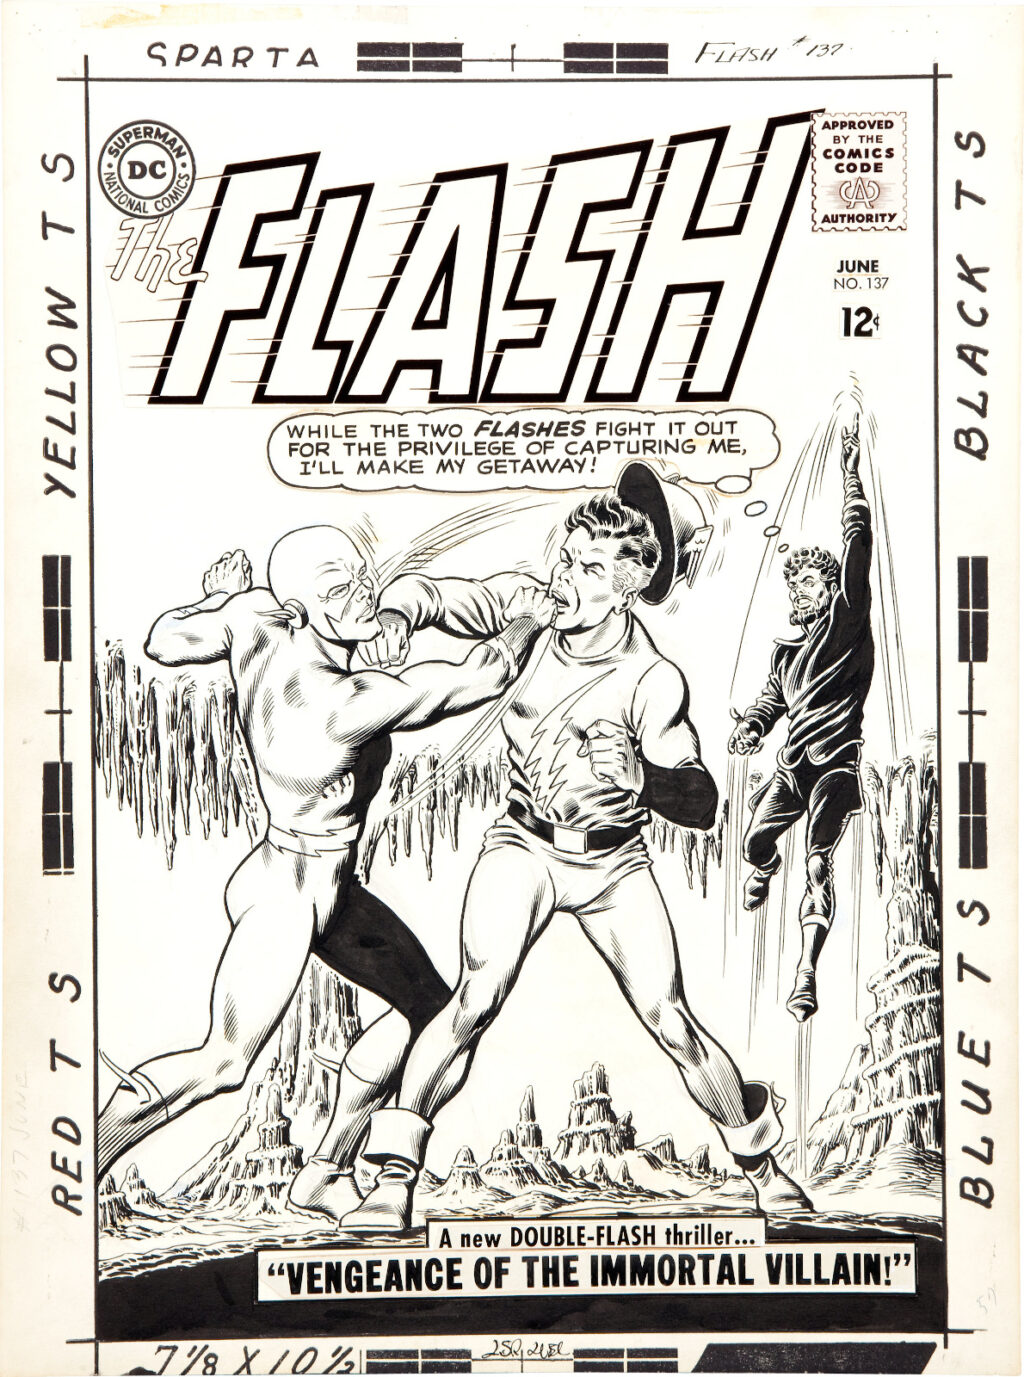 The Flash issue 137 cover by Carmine Infantino and Murphy Anderson